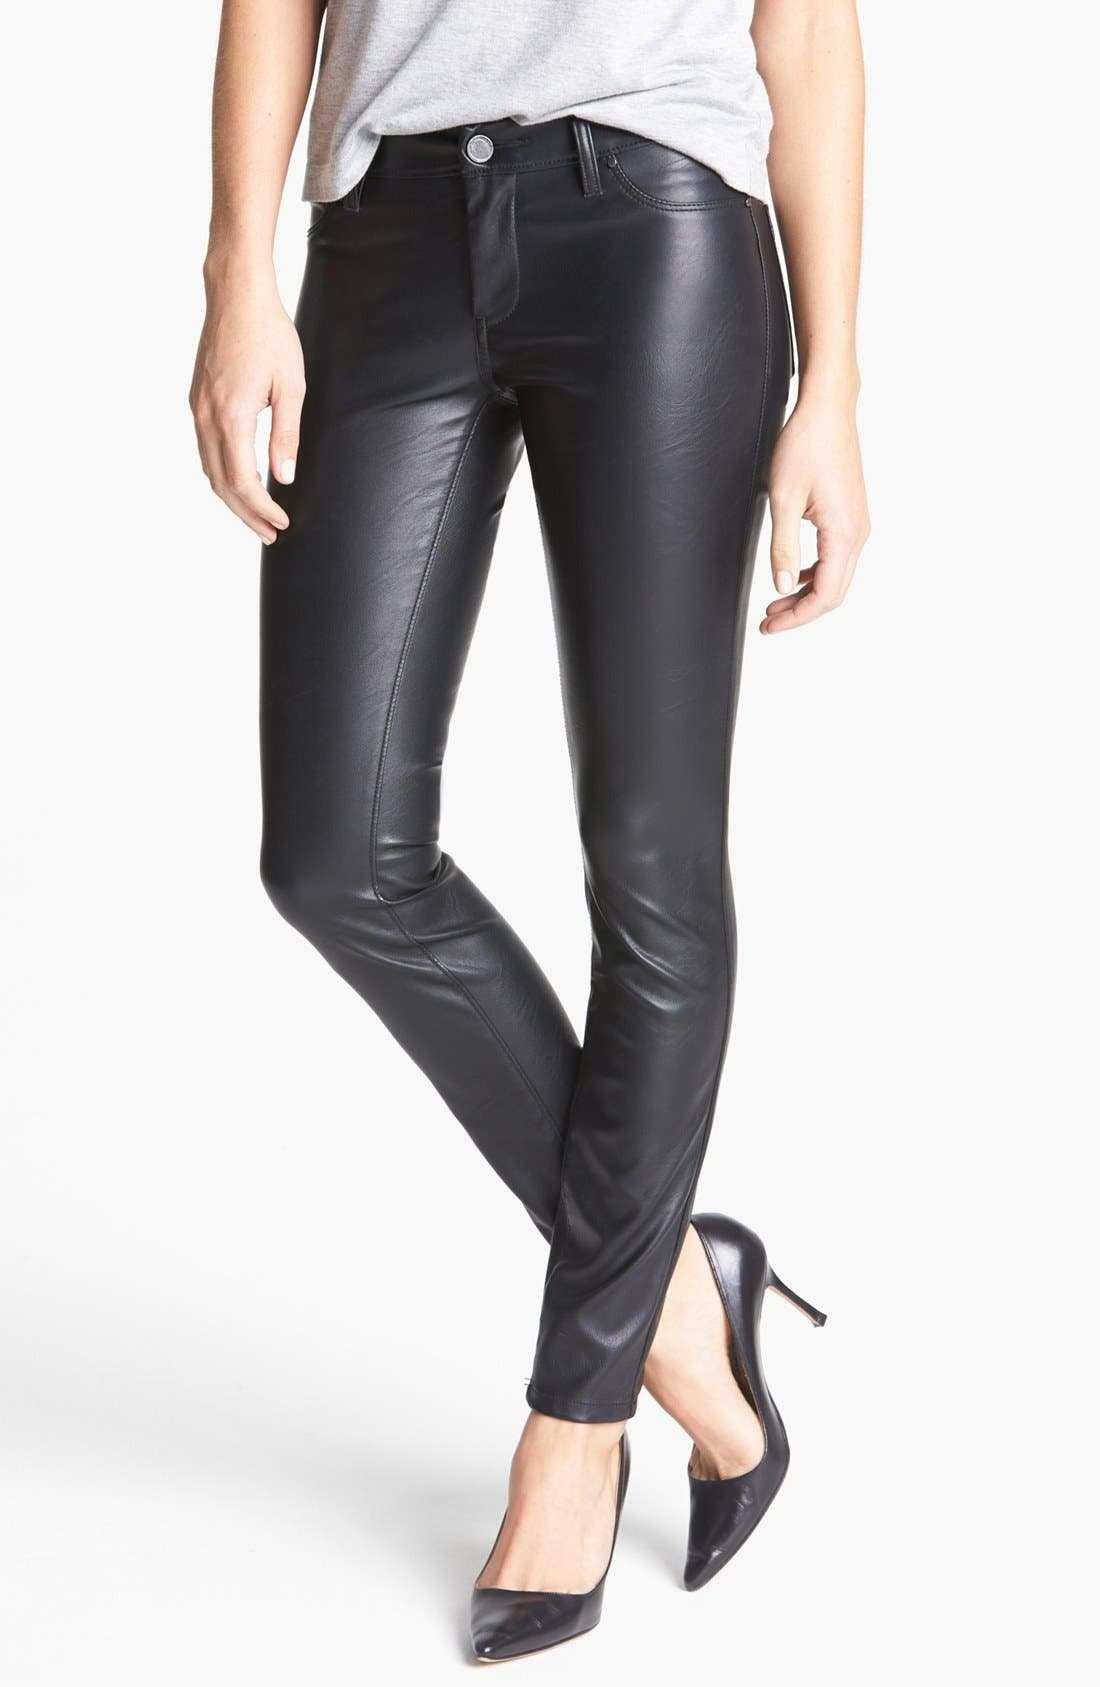 BLANKNYC, Faux Leather Skinny Pants, Main thumbnail 1, color, 005